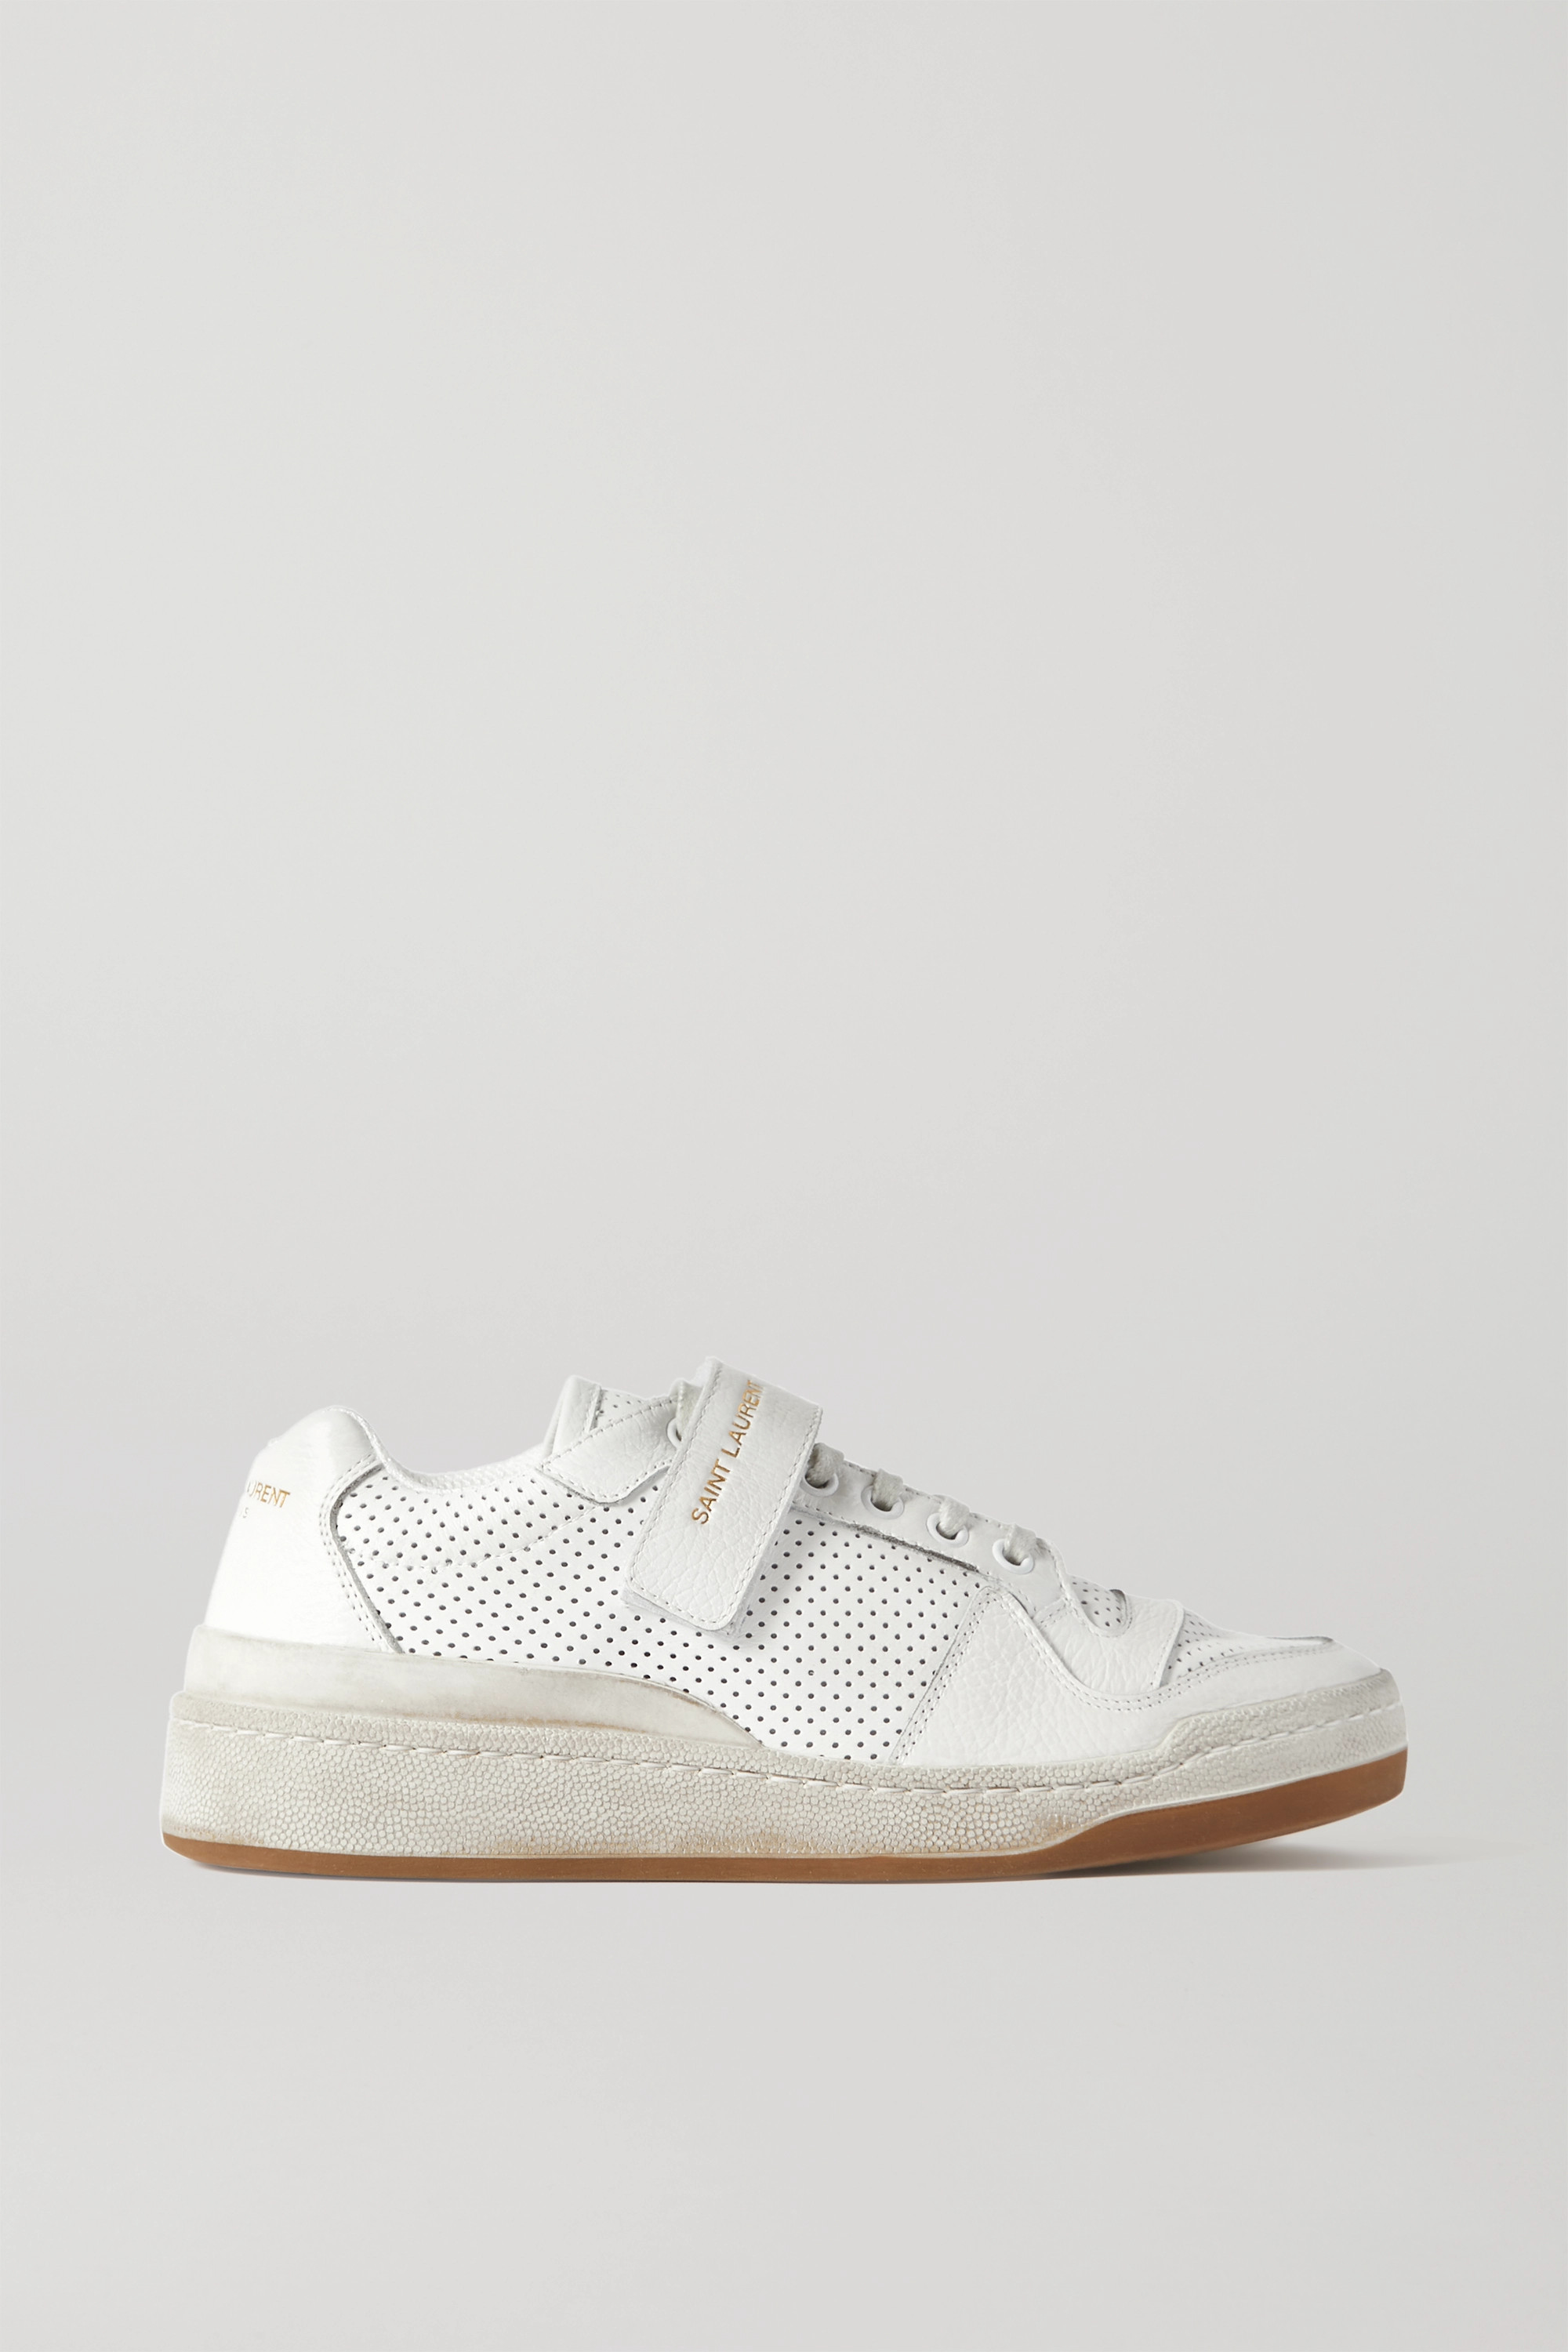 SAINT LAURENT Travis logo-print distressed perforated leather sneakers